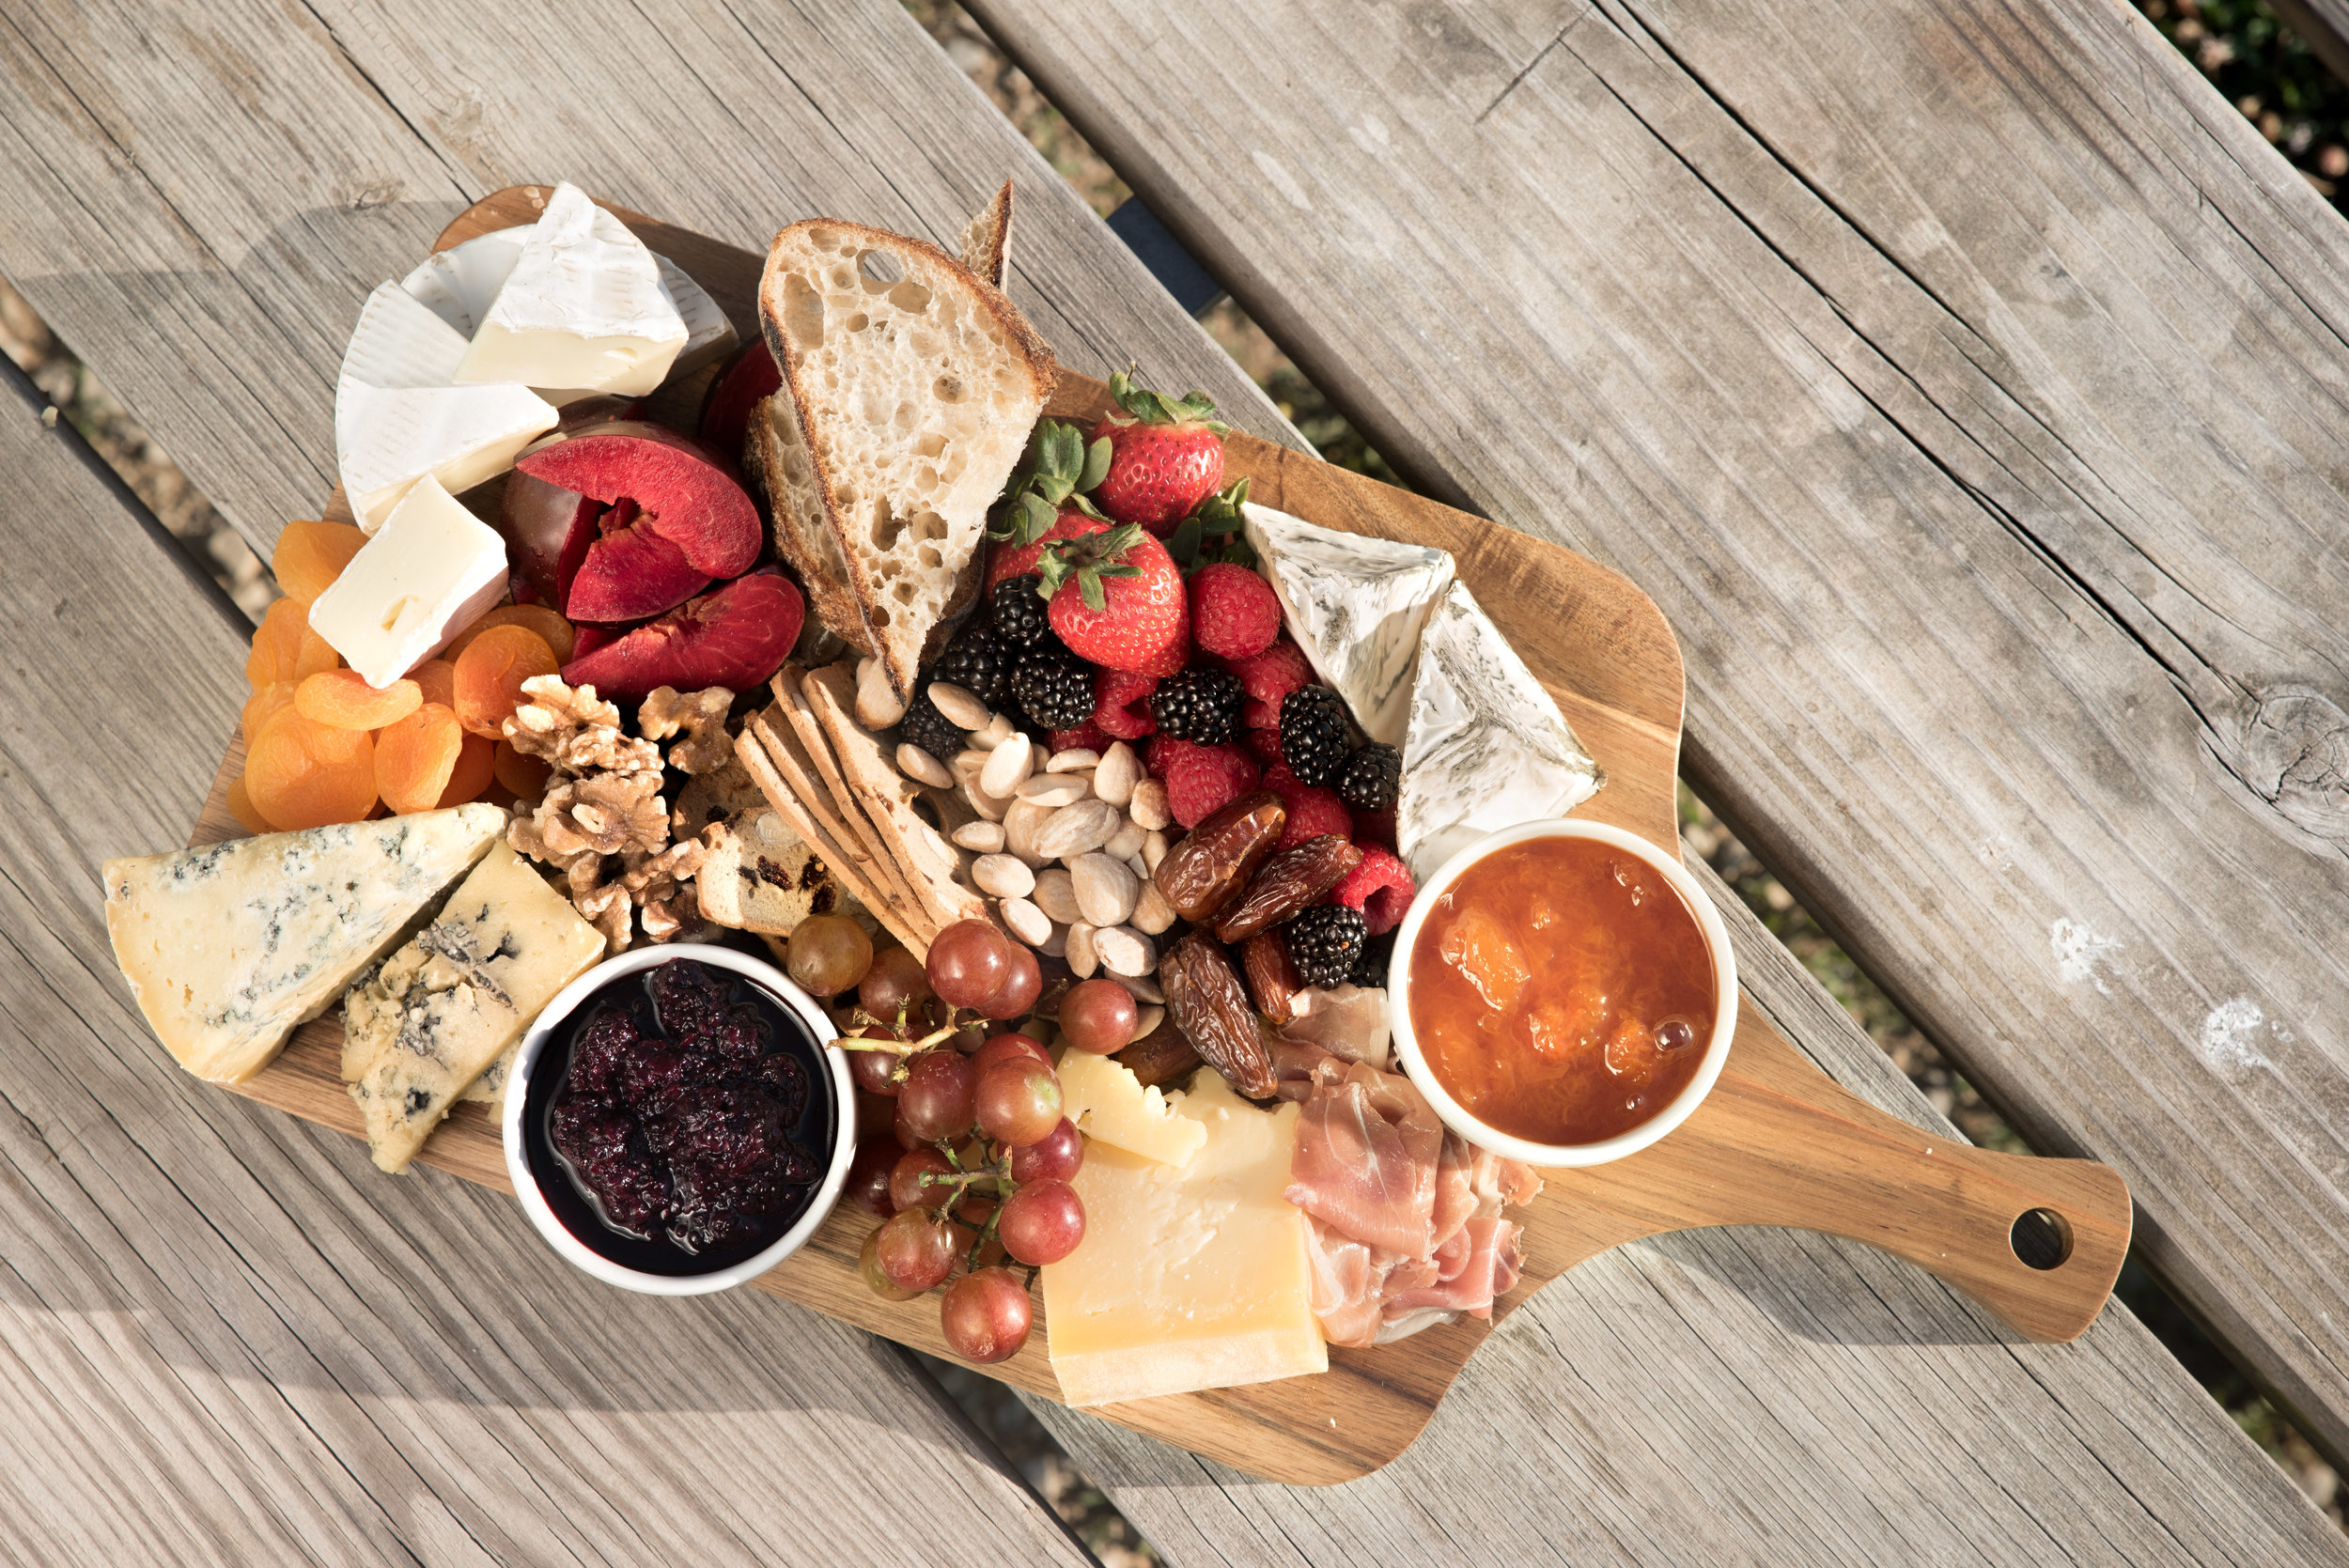 Charcuterie board handcrafted to highlight the fresh and local vendors that Ash and Bleu Cheese Co. worked with.